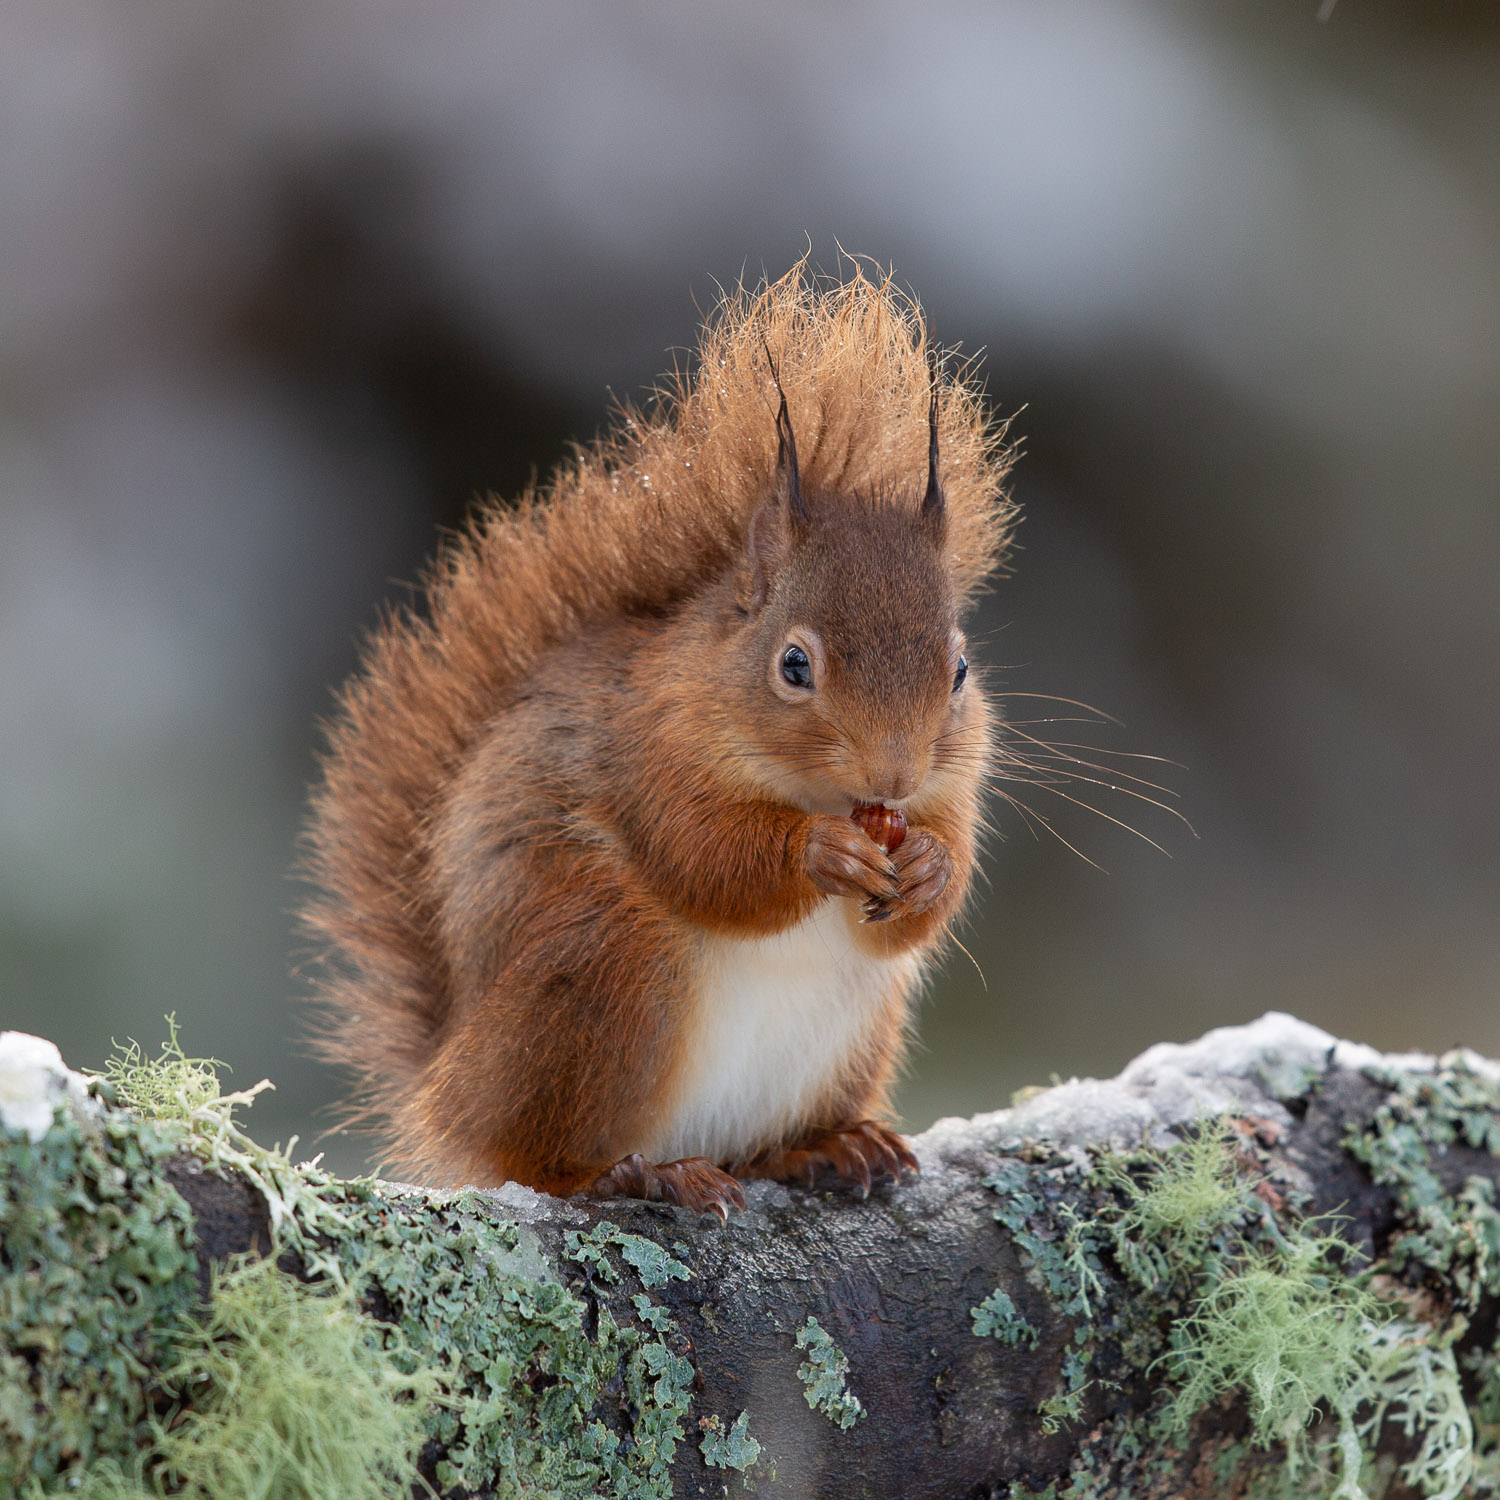 Red squirrel eating